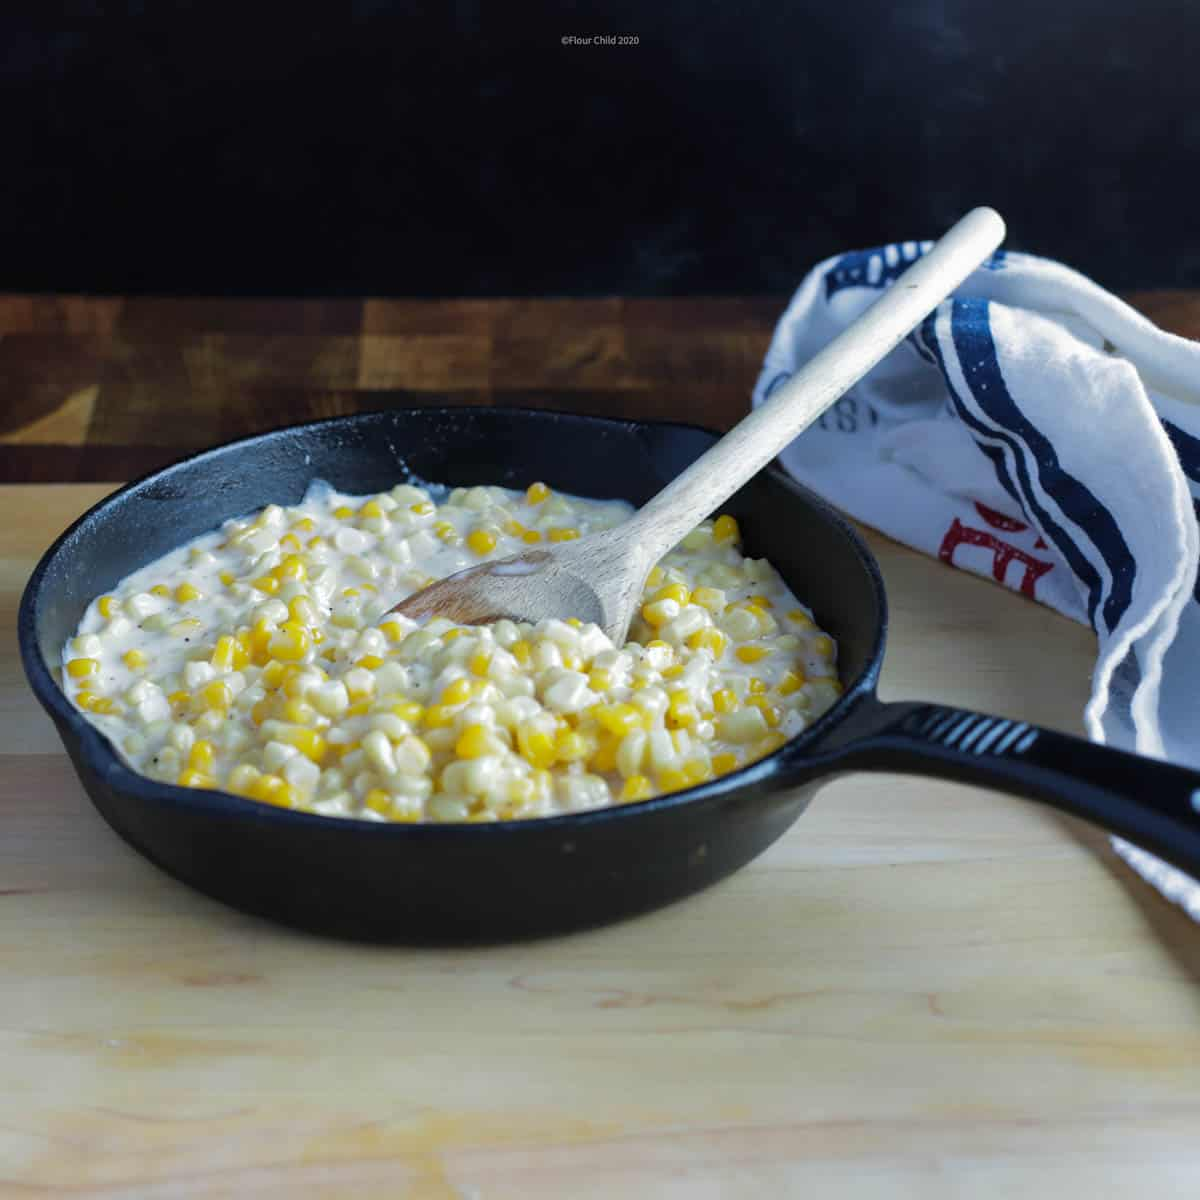 This southern sweet creamed corn recipe features both yellow and white corn for color variation in the dish.